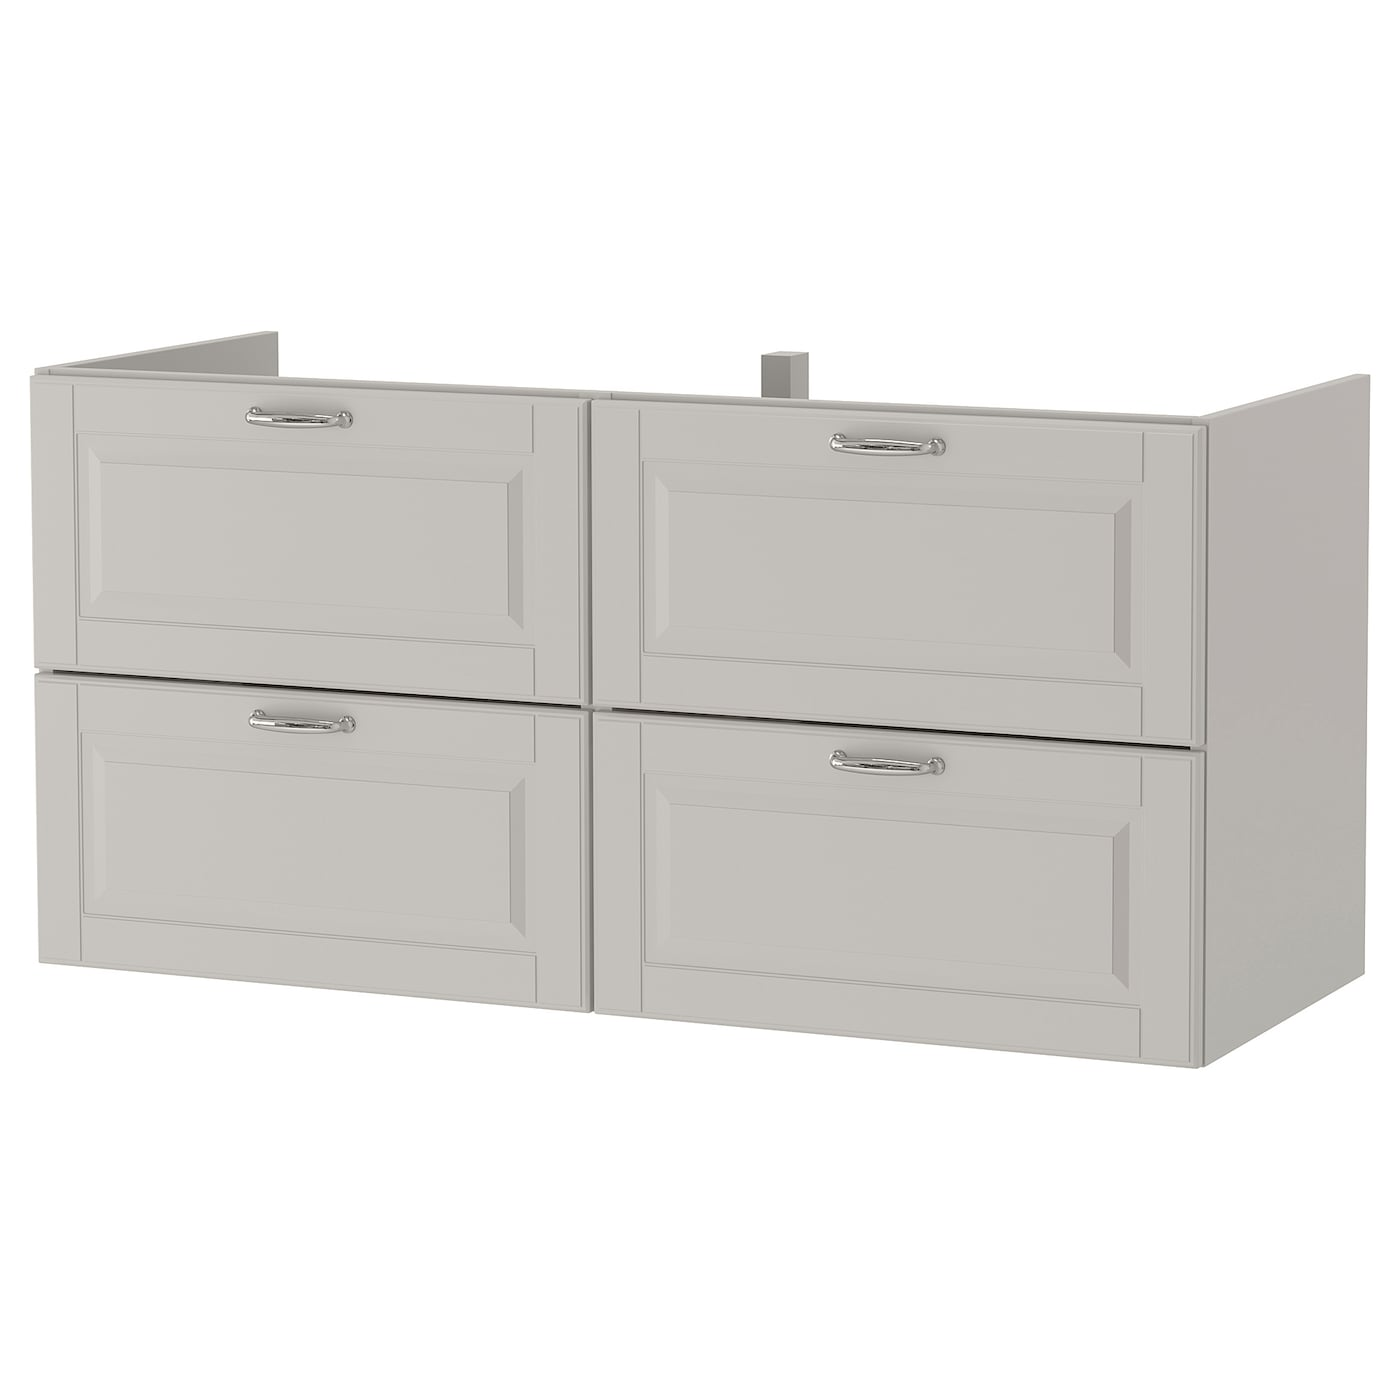 IKEA GODMORGON wash-stand with 4 drawers Smooth-running and soft-closing drawers with pull-out stop.